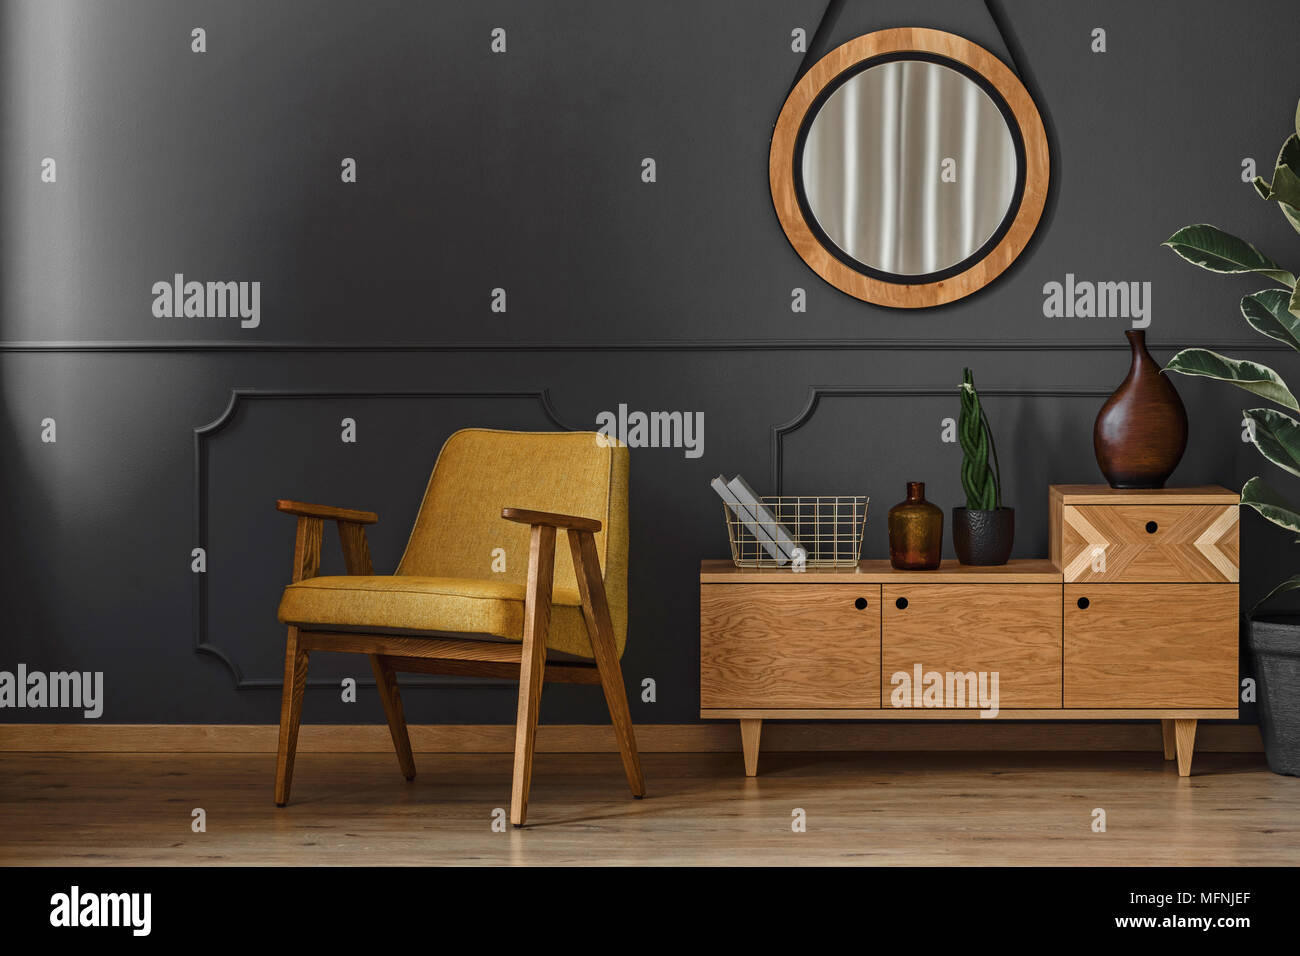 Living Room Interior With Round Mirror Wooden Cupboard And